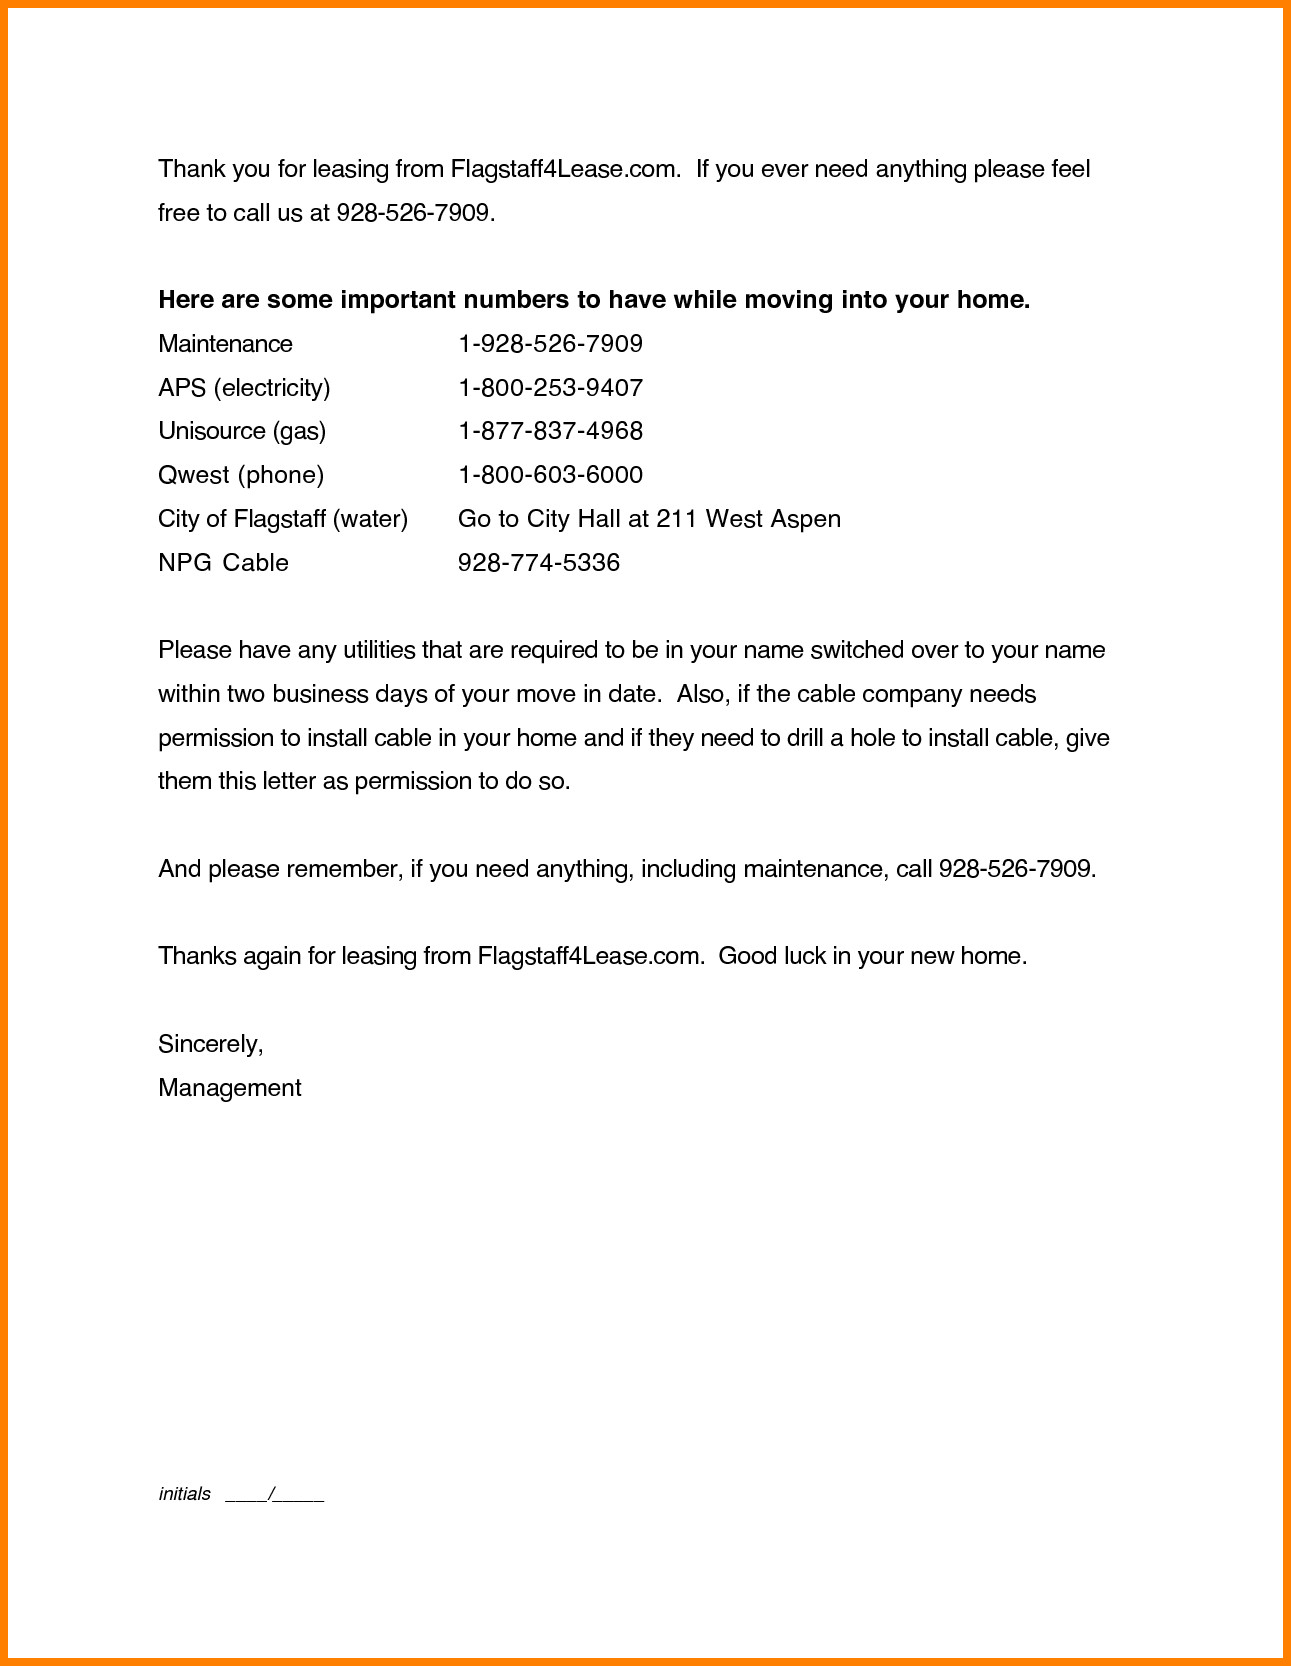 Lease Termination Letter Template - Early Lease Termination Letter to Tenant Sample Fresh top Result 50